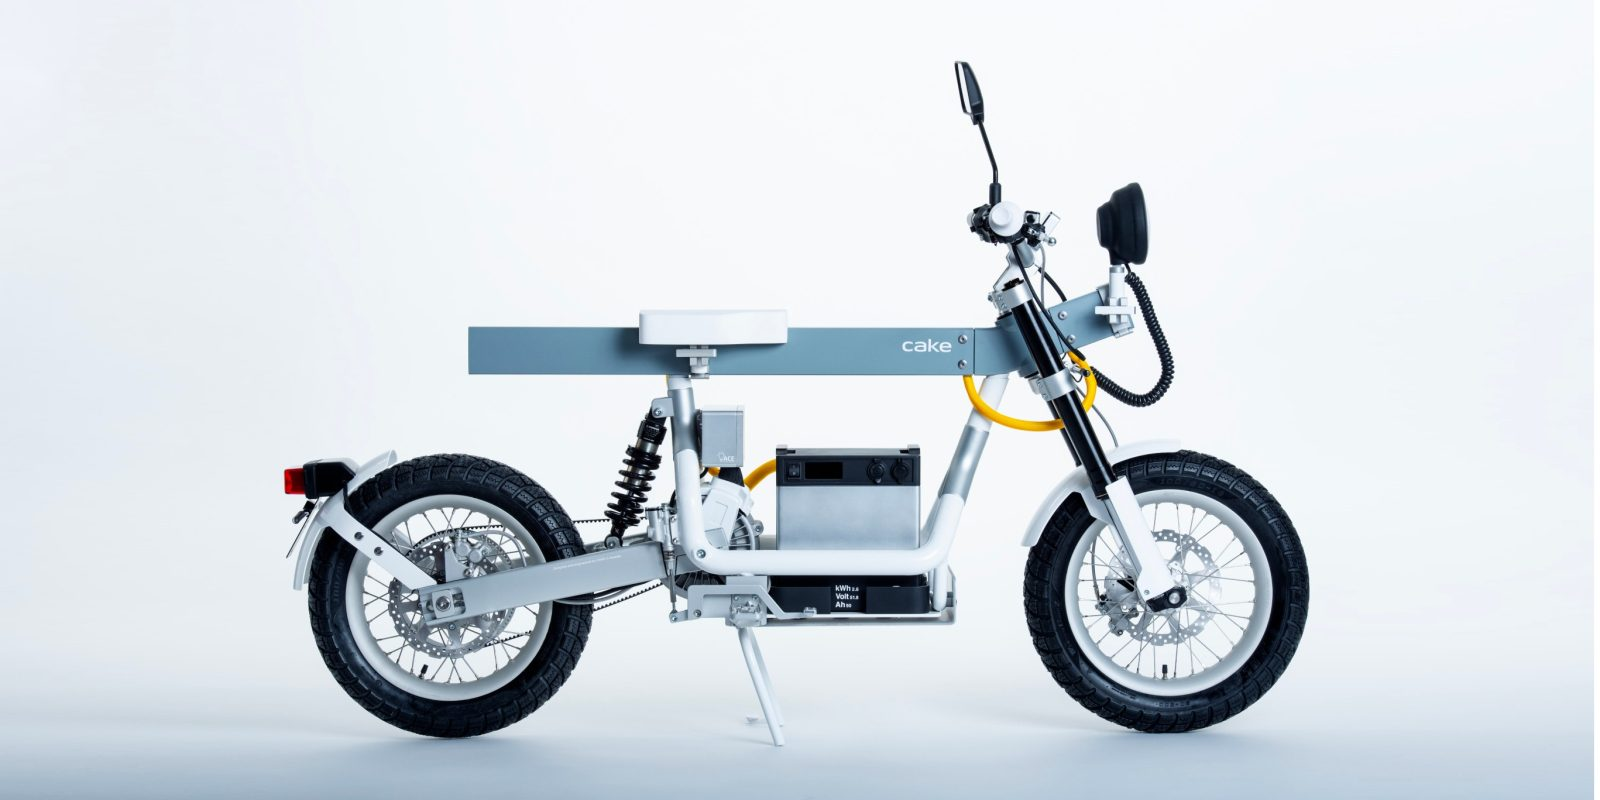 CAKE unveils new 63 mph electric motorcycle that is a workbench on wheels